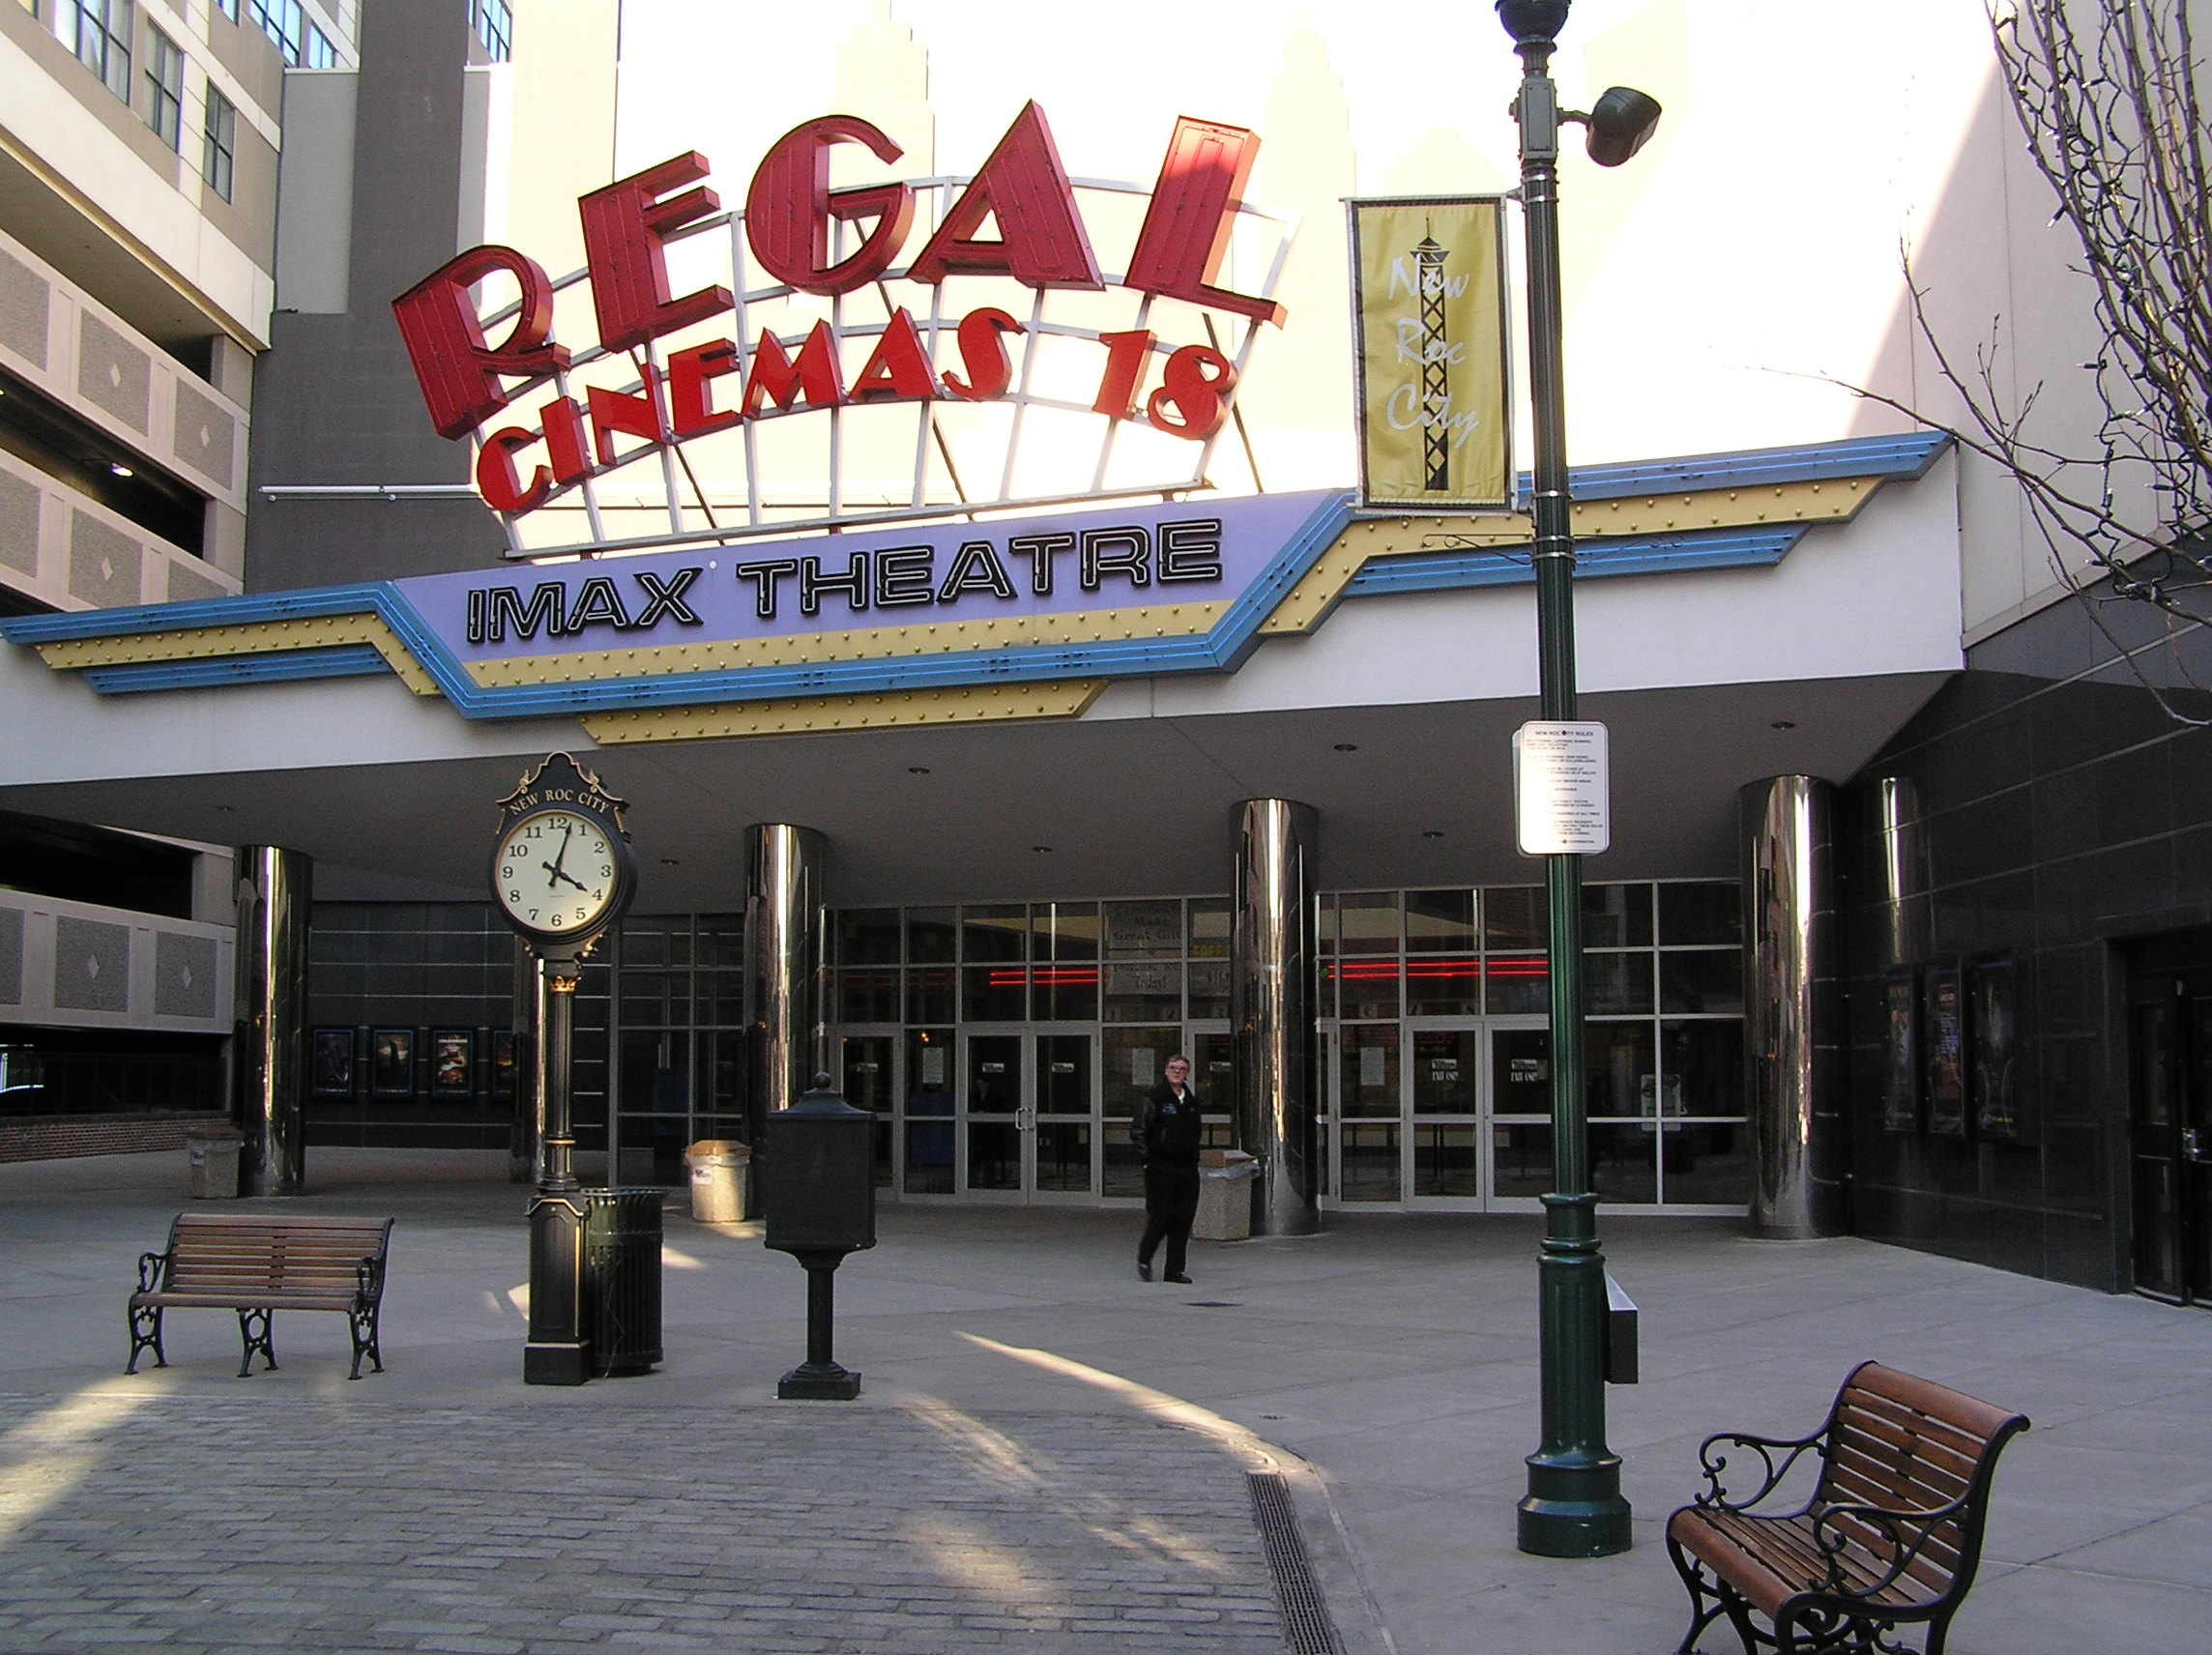 Catchy Regal Cinemas Oceanside Stadium Movie Ater Reviewsedwards Rancho Sandiego Stadium Movie Times Regal Movie Aters San Diego Recent Wholesale Regal Chula Vista Phone Number Regal Chula Vista Coco houzz-03 Regal Chula Vista